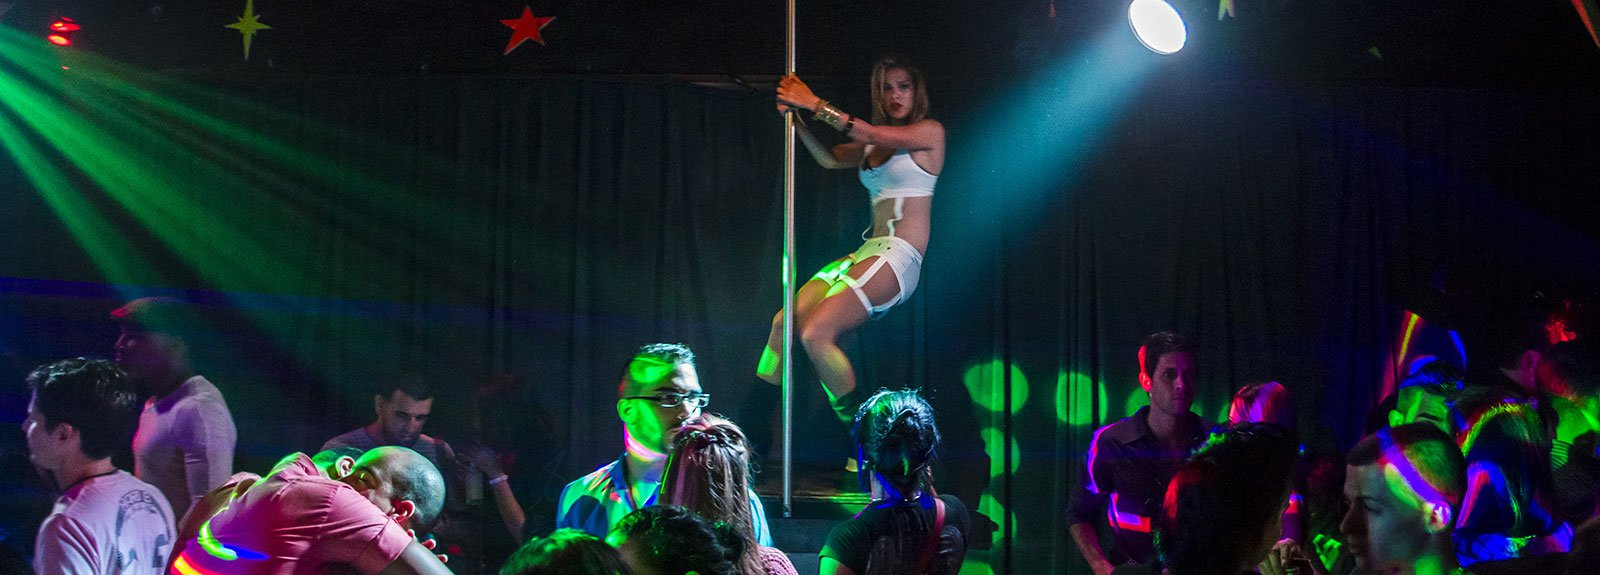 Stair to heaven night club, dancer performing dress in white